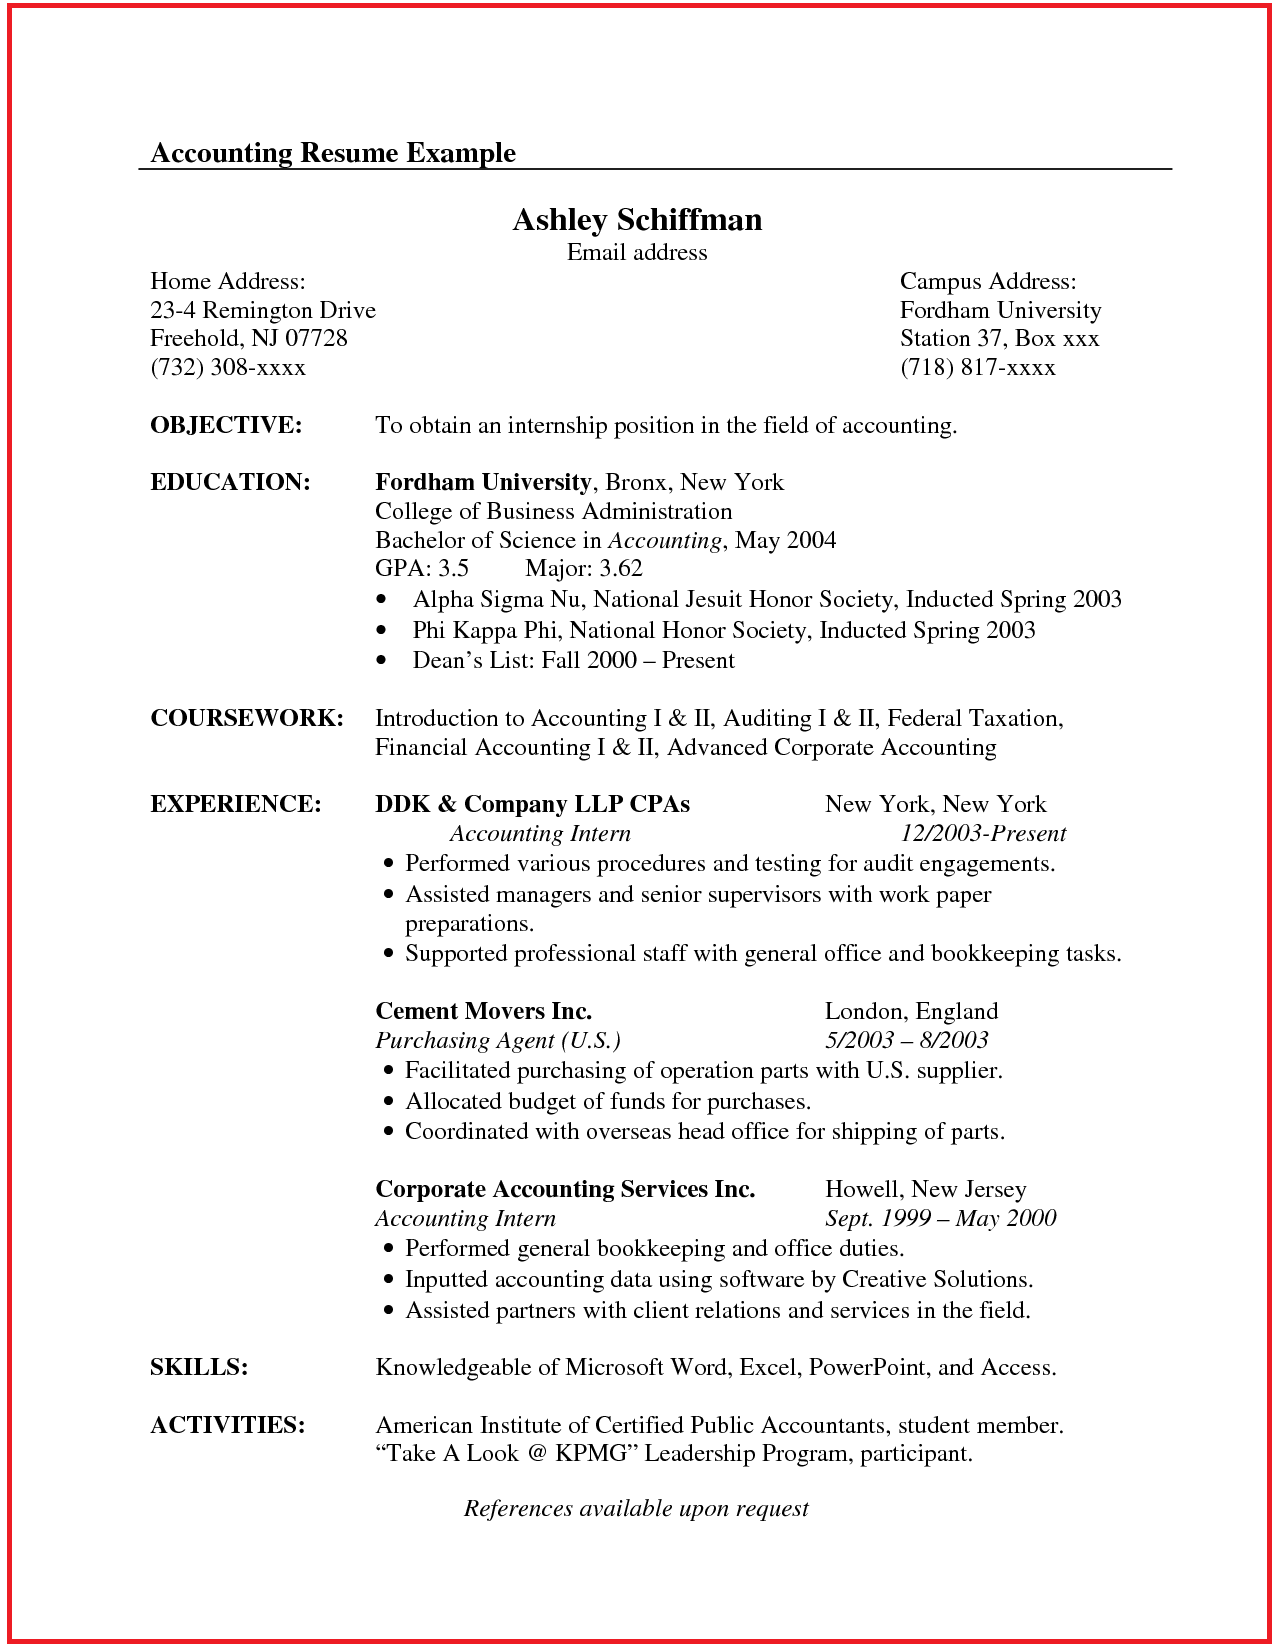 pin by golda on letters | sample resume, resume, resume examples